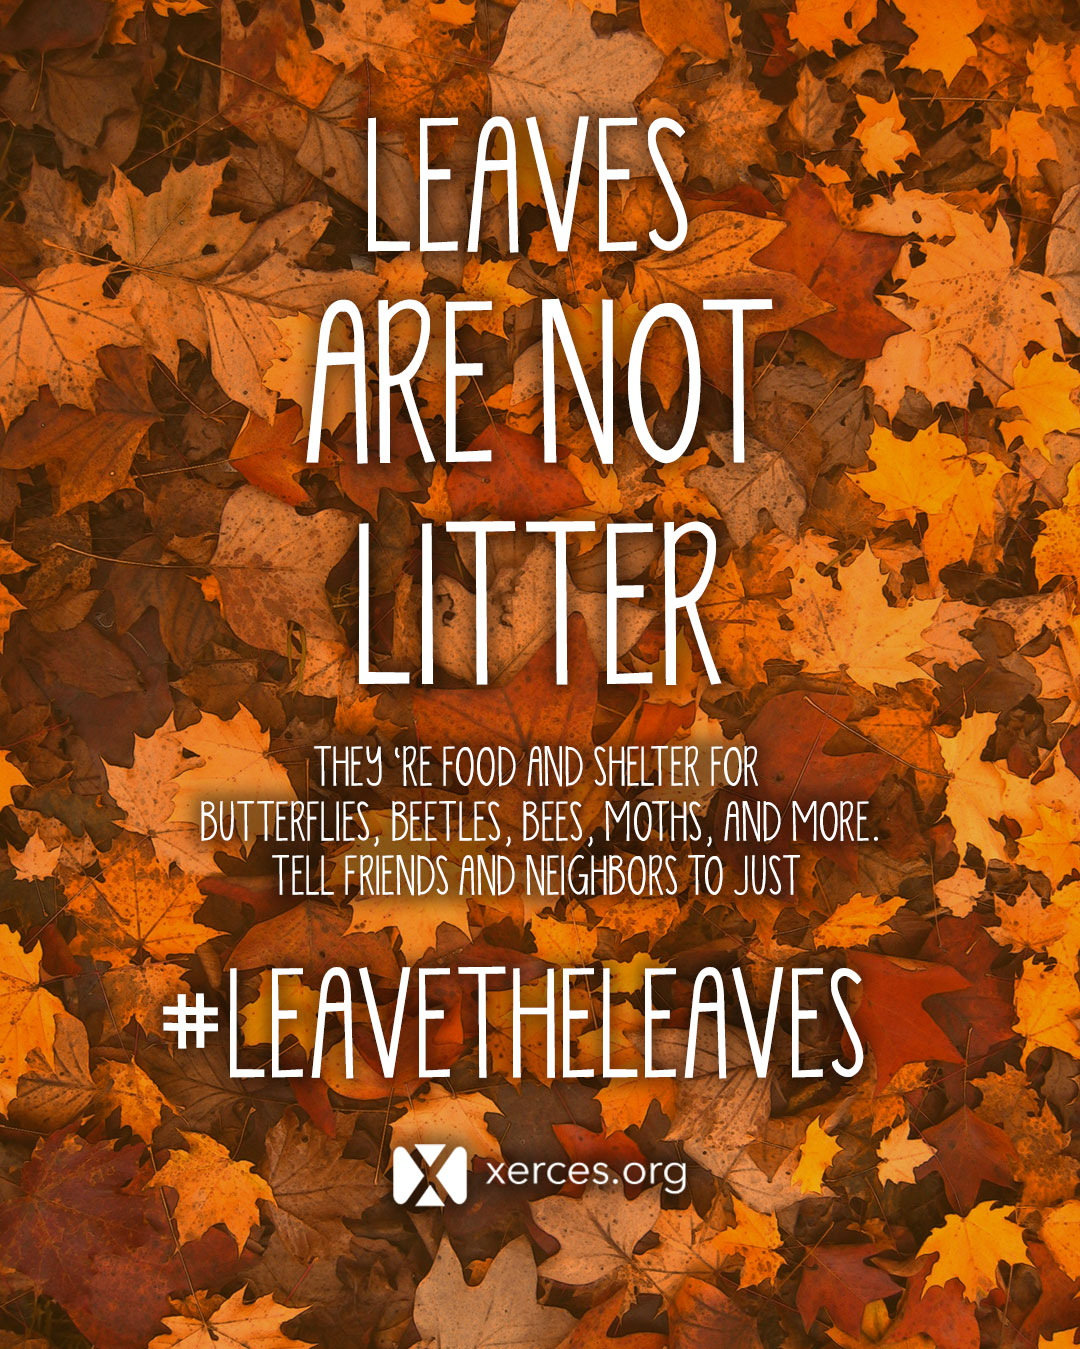 "A graphic with a bright background of orange and red leaves has white text that says ""Leave Are Not Litter"" in large letters. In smaller writing, it says, ""They're food and shelter for butterflies, beetles, bees, moths, and more. Tell neighbors and friends to just #leavetheleaves."" Then there is a small white Xerces Society logo."